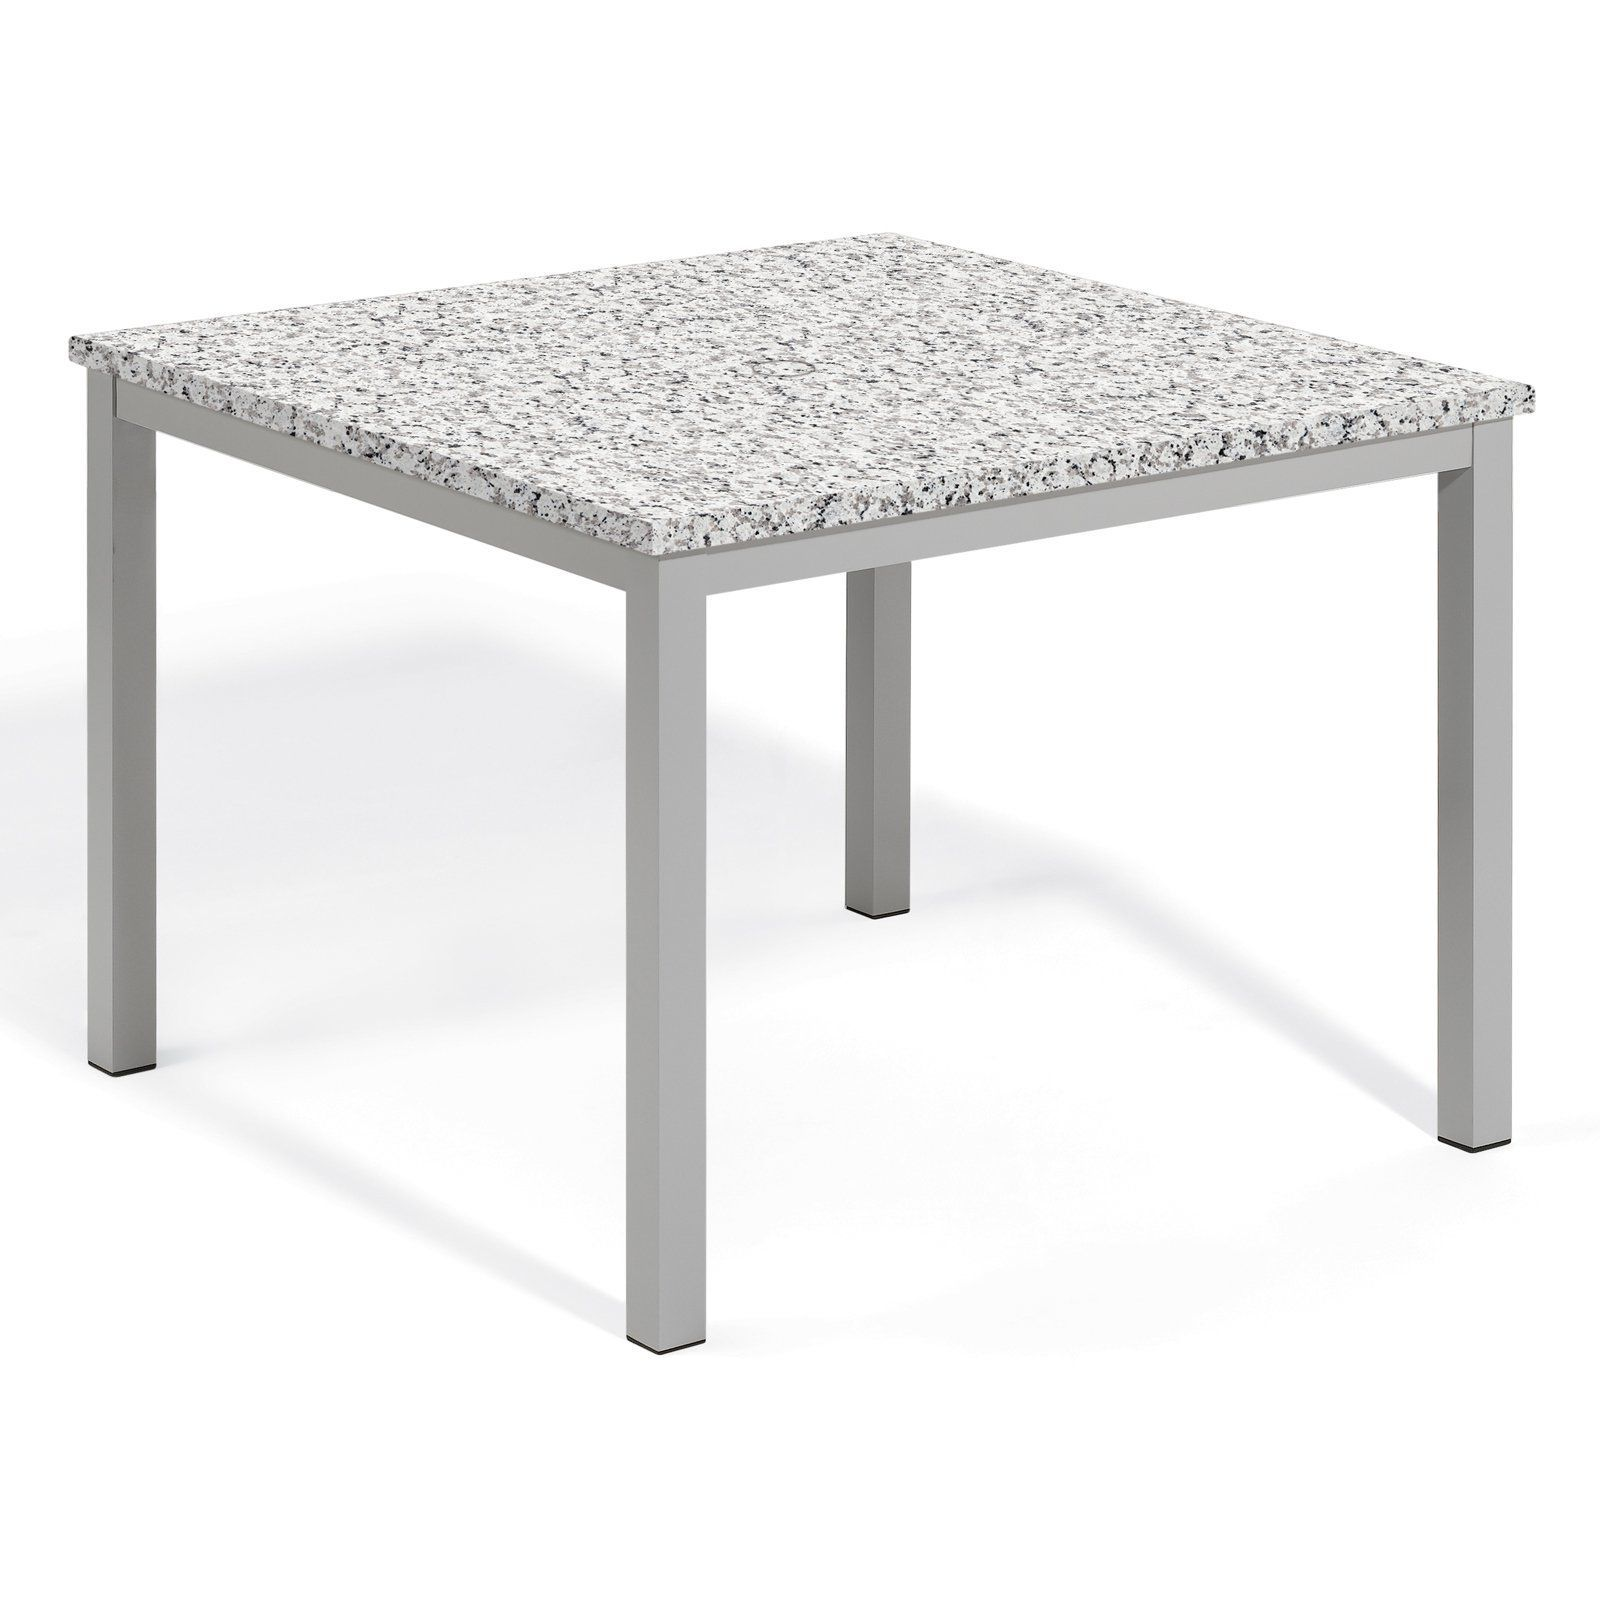 Outdoor Oxford Garden Travira 39 in. Lite-Core Square Patio Dining Table - TV39TAH